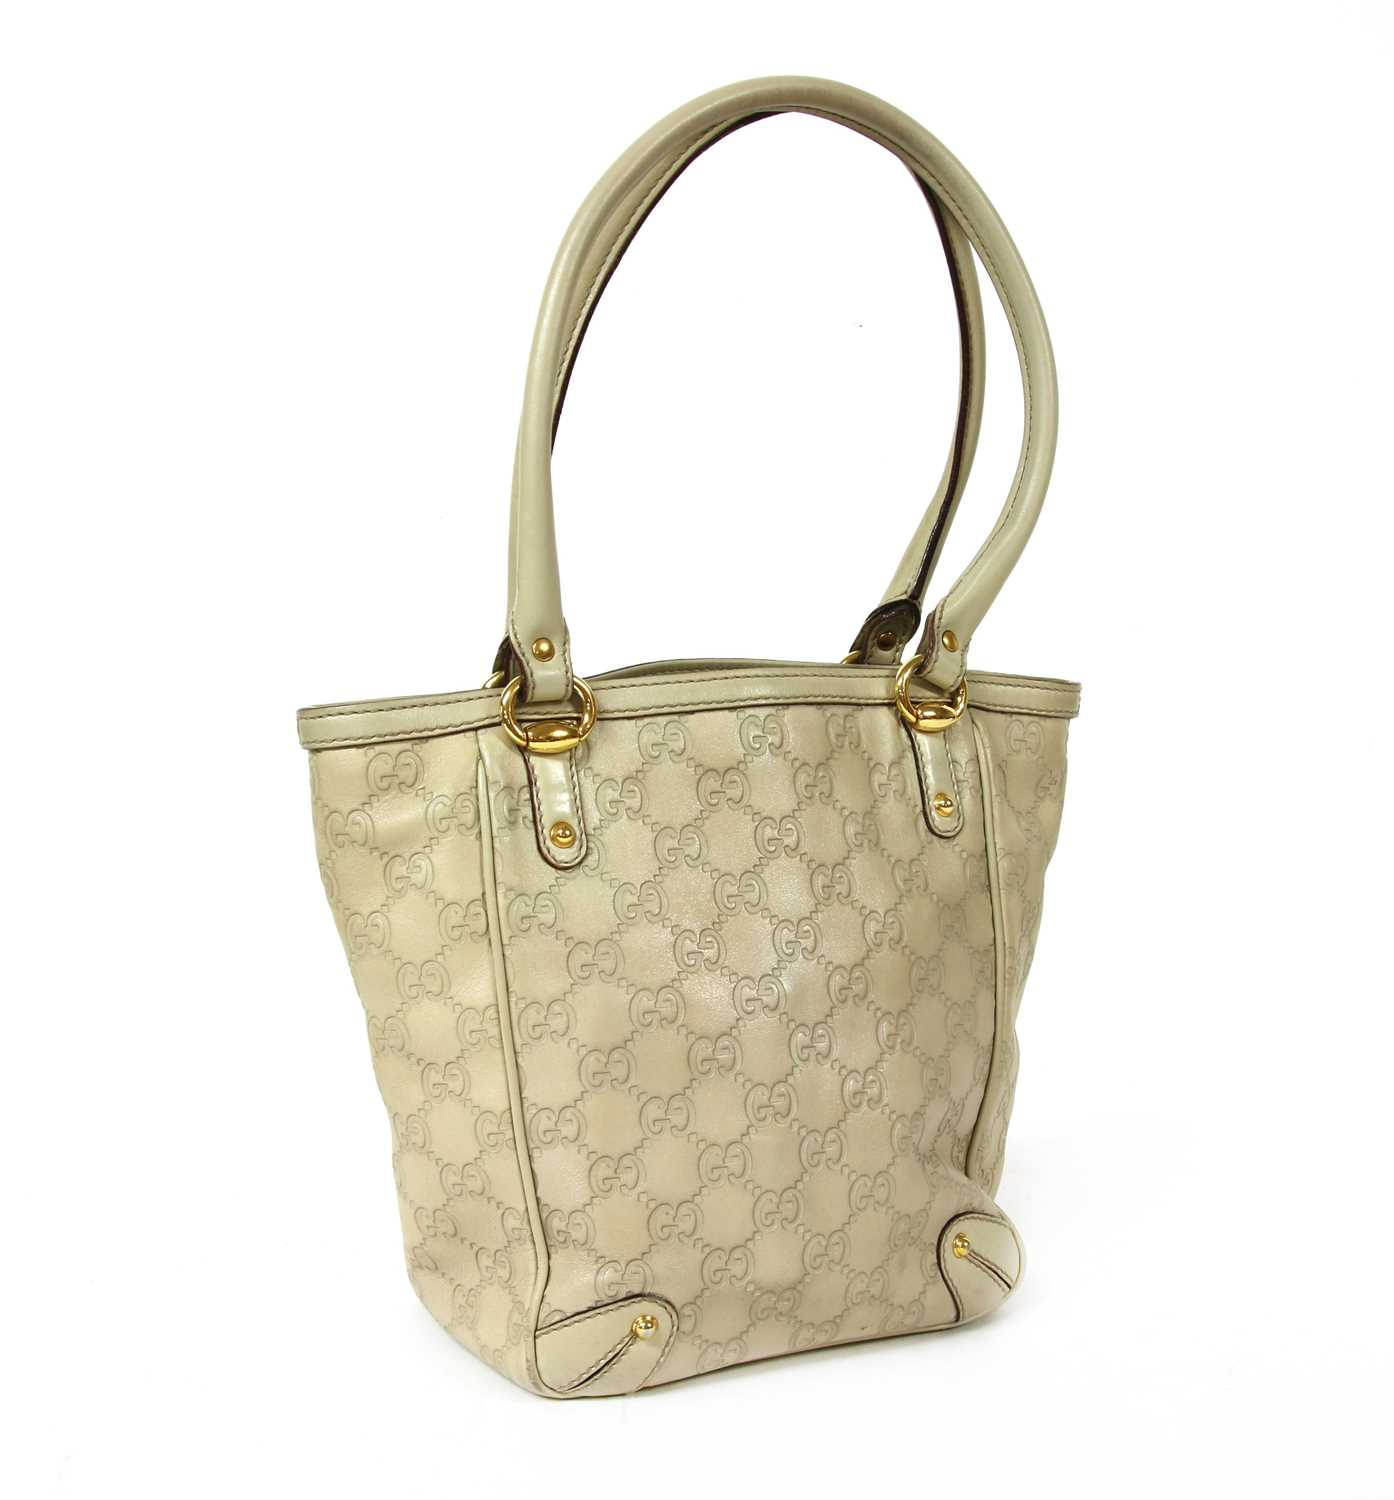 A Gucci ivory leather bucket bag